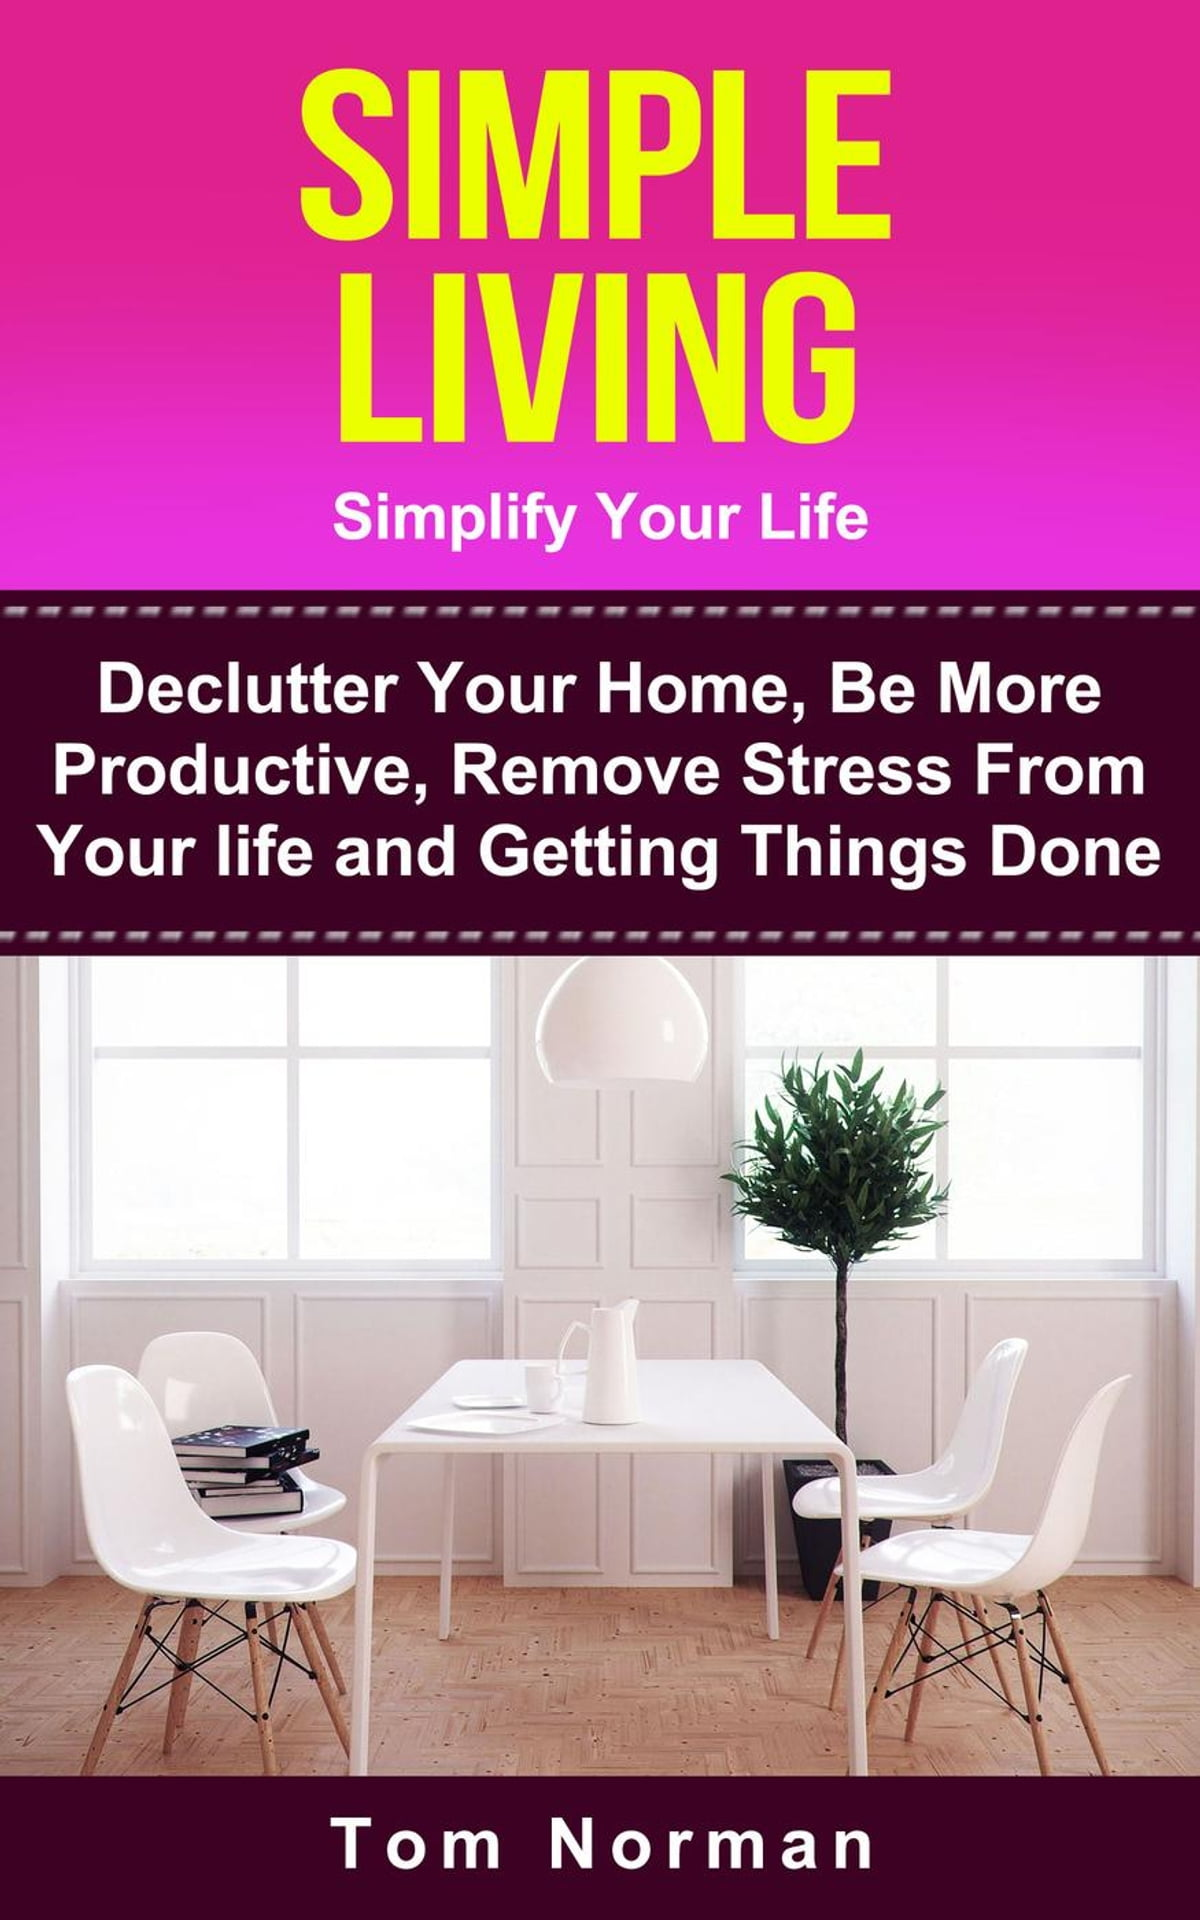 Simple Living: Simplify Your Life: De-clutter Your Home, Be More  Productive, Remove Stress From Your Life and Getting Things Done eBook by  Tom Norman ...